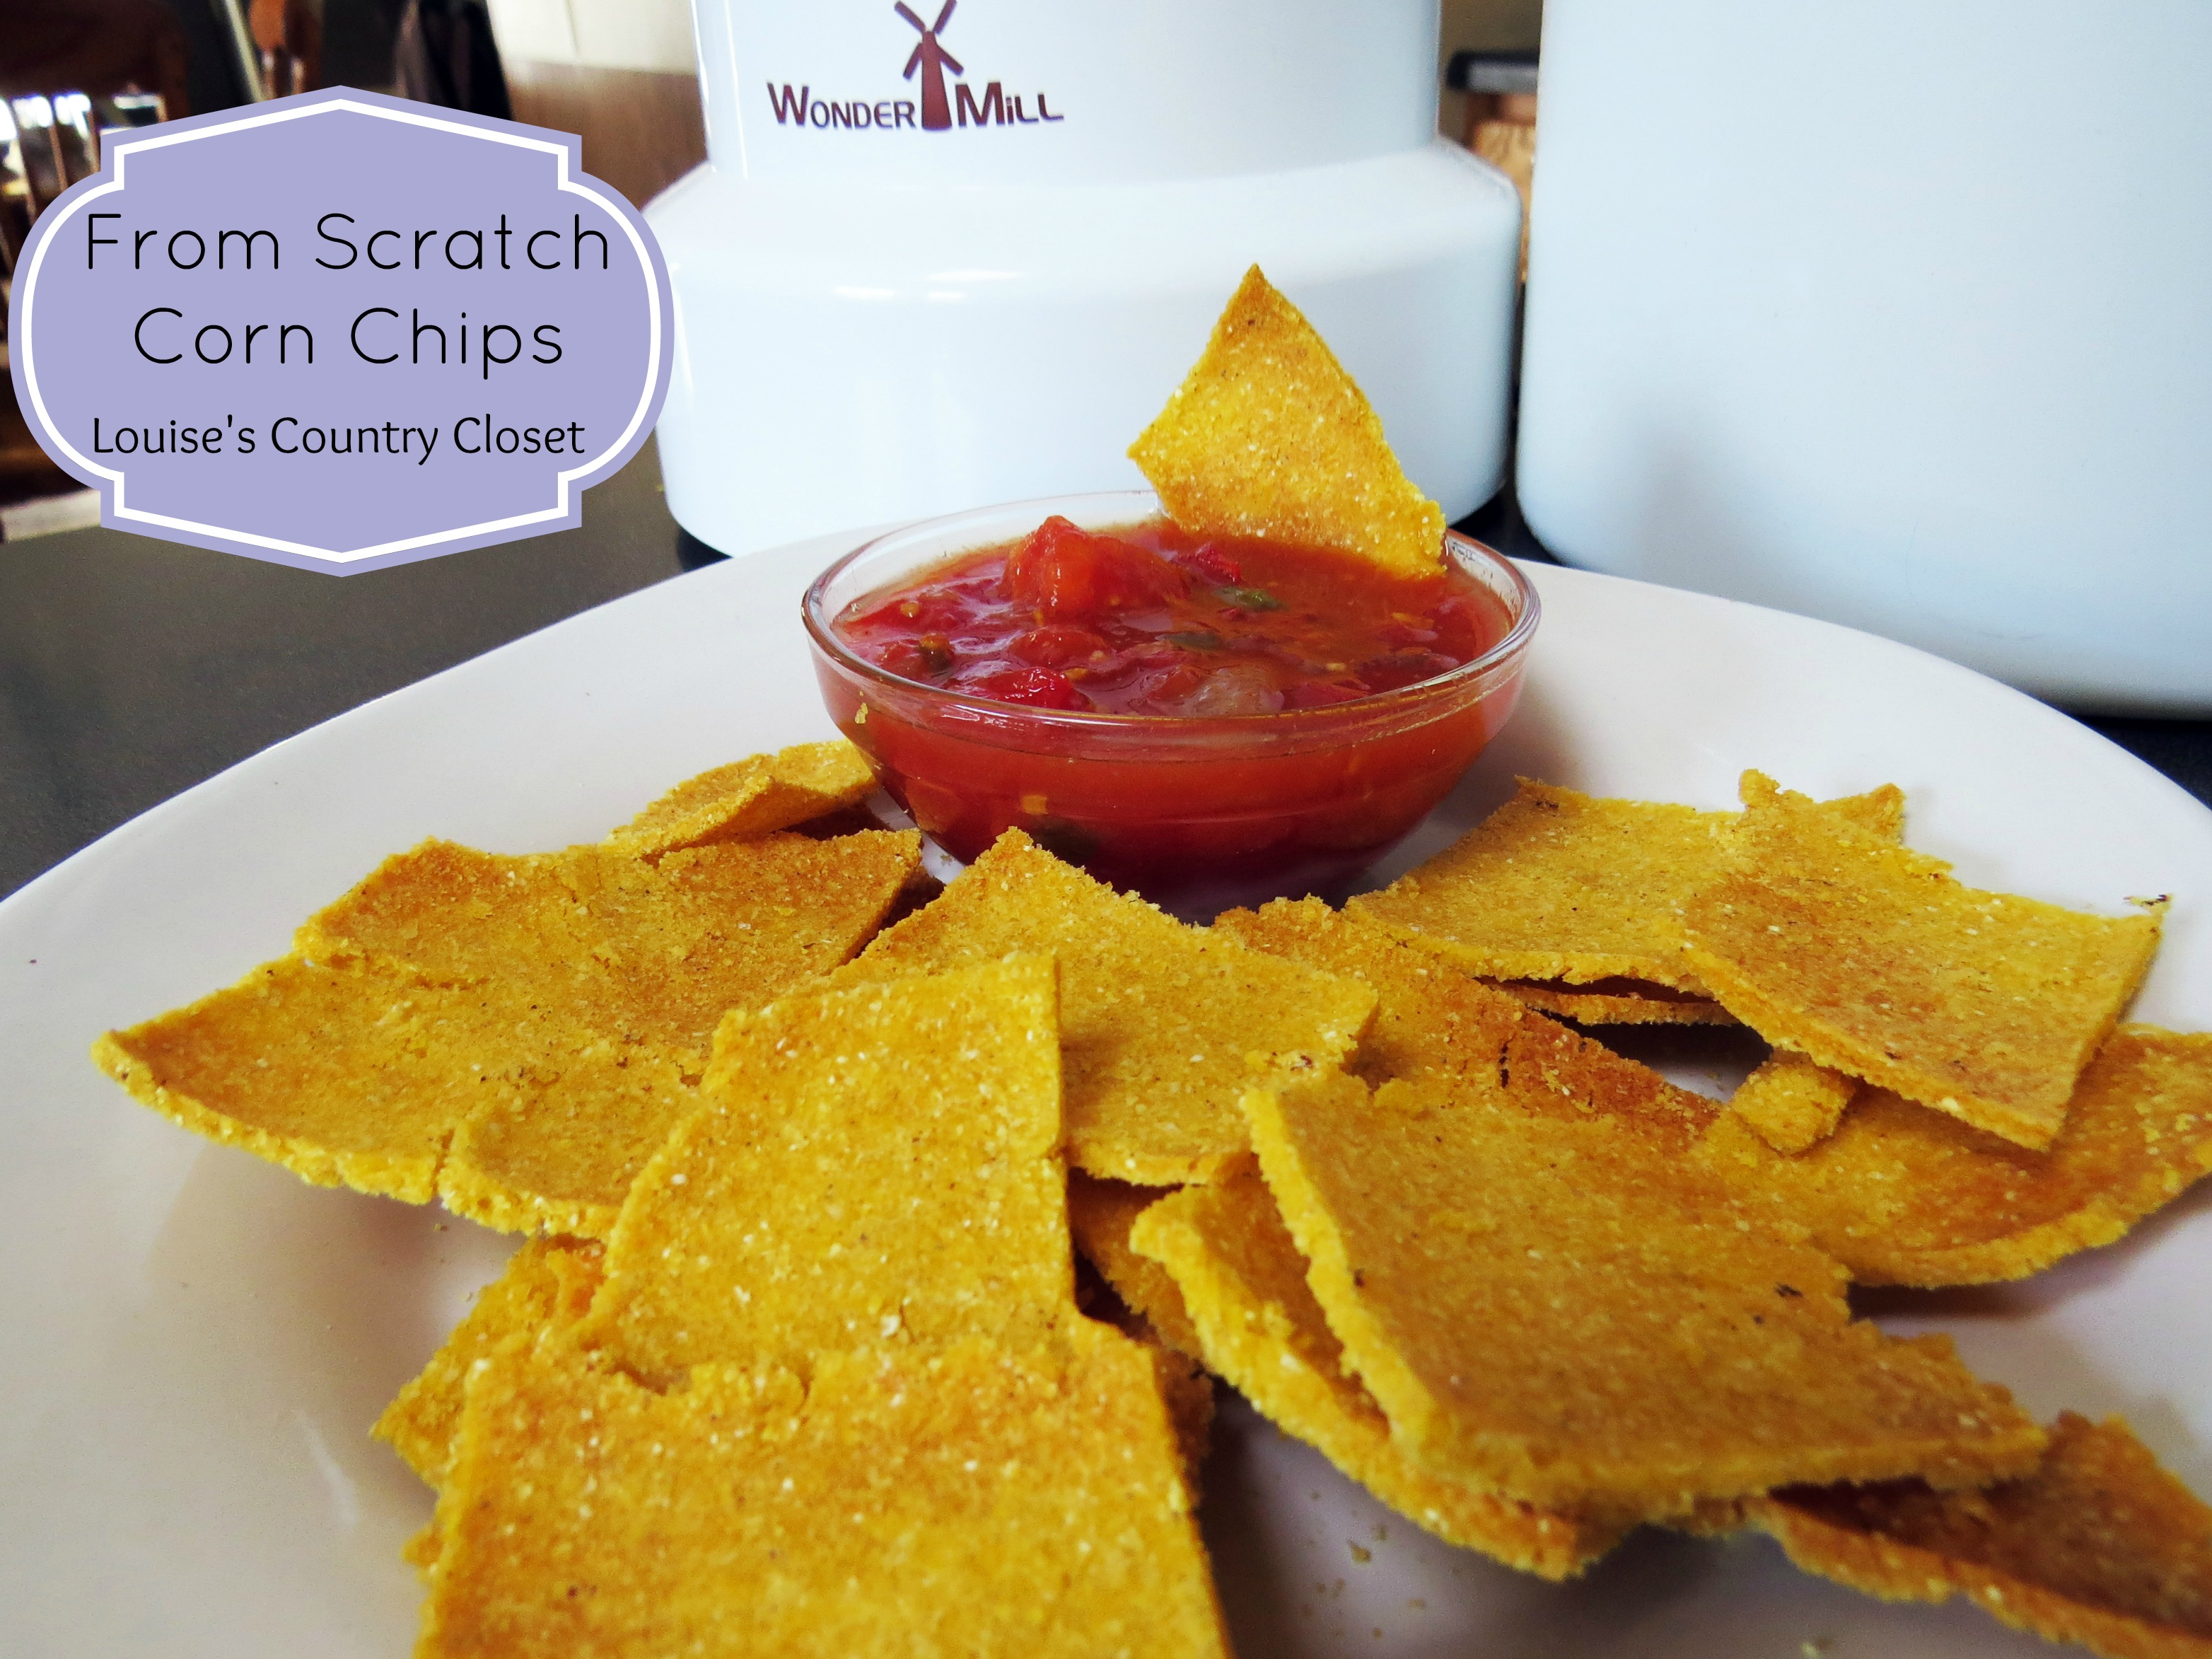 From Scratch Corn Chips